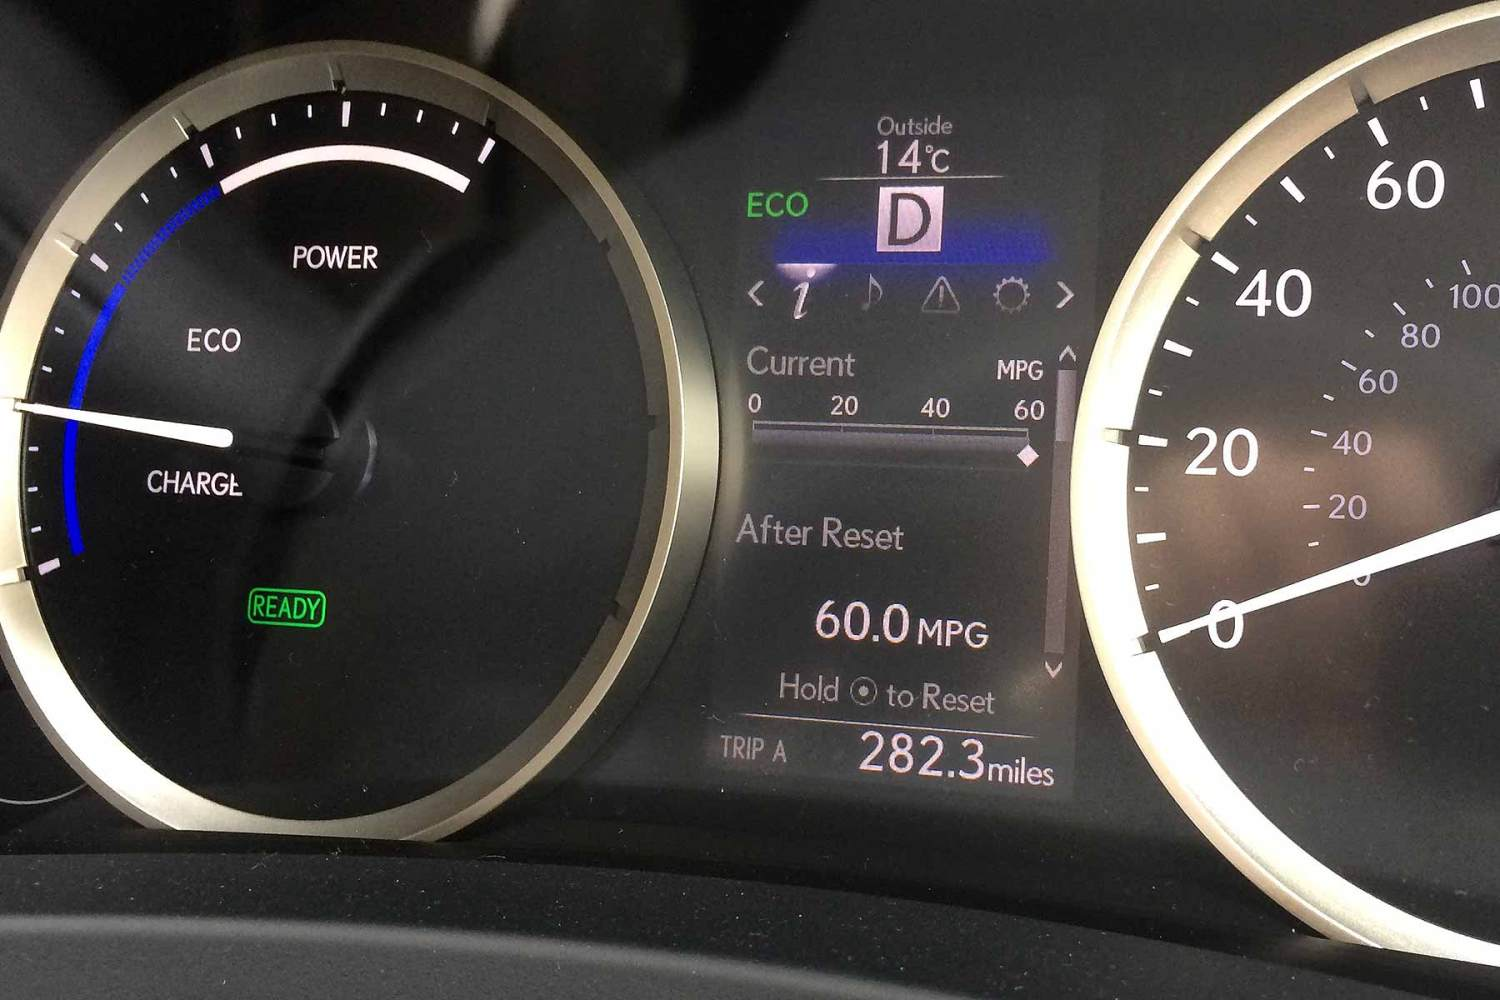 Lexus IS 300h long-term review month 5